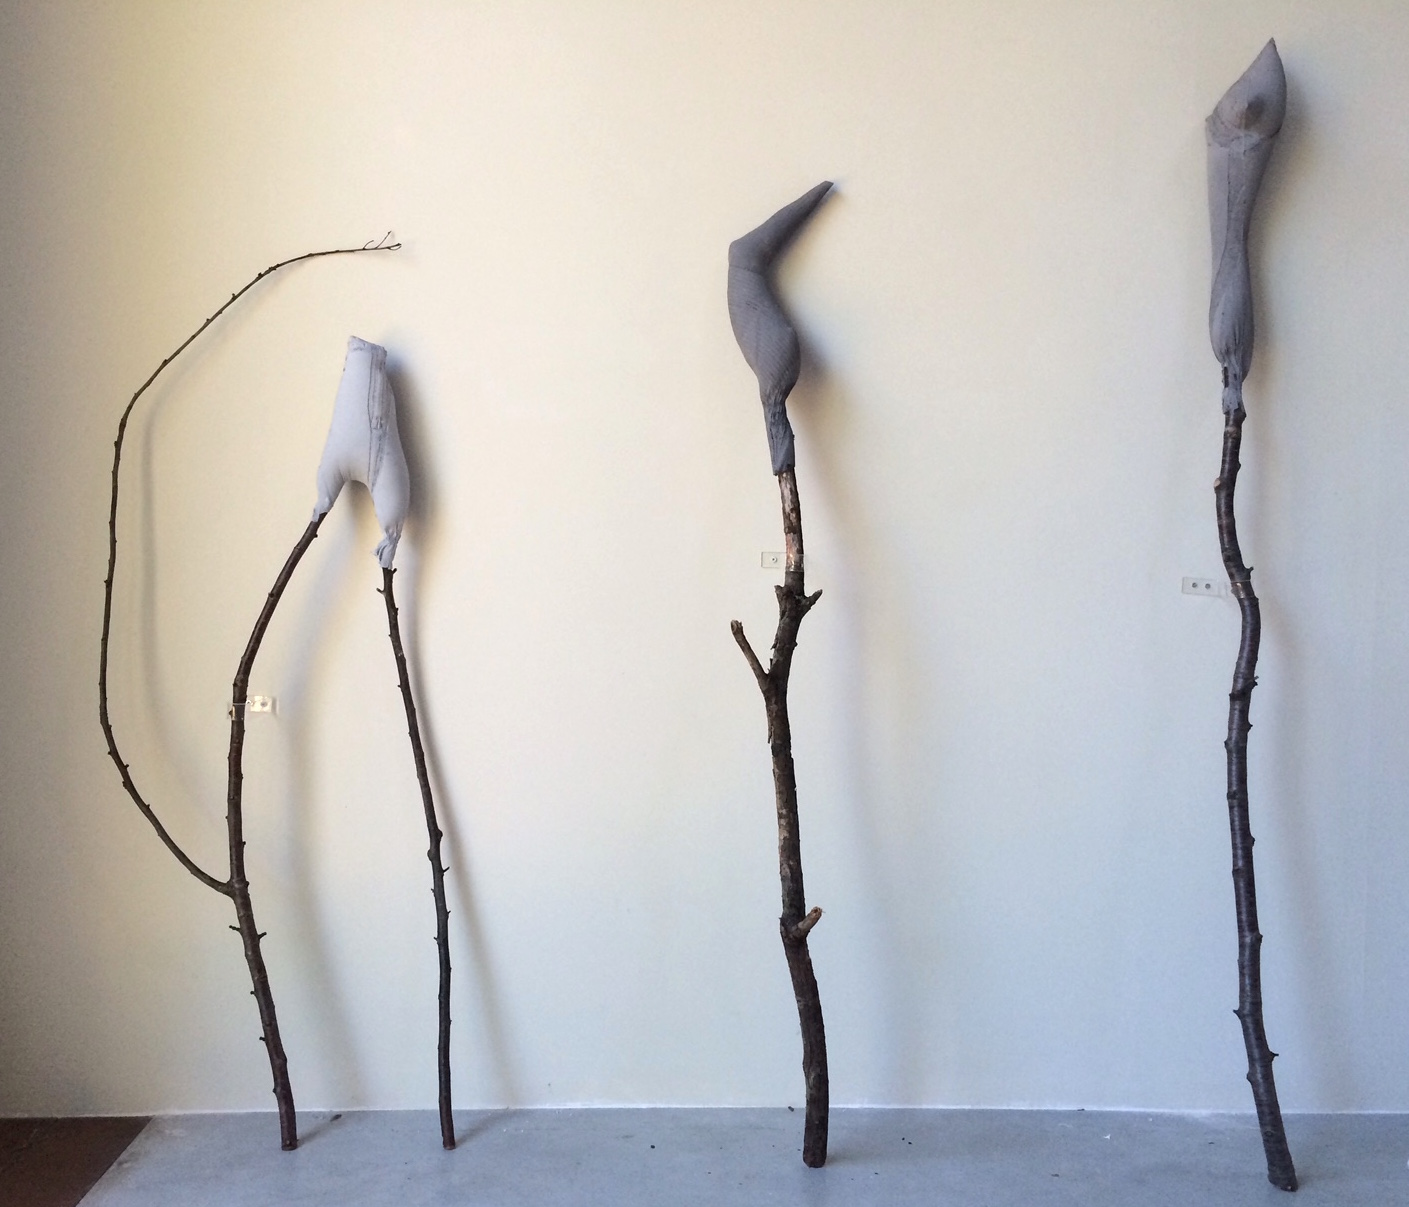 06 Big Stick (hip), Big Stick (arm pit), Big Stick (collar), 2015, jesmonite, found sticks, 124 x 50 x 10 cm, 150 x 20 x 23 cm, 174 x 14 x 15 cm